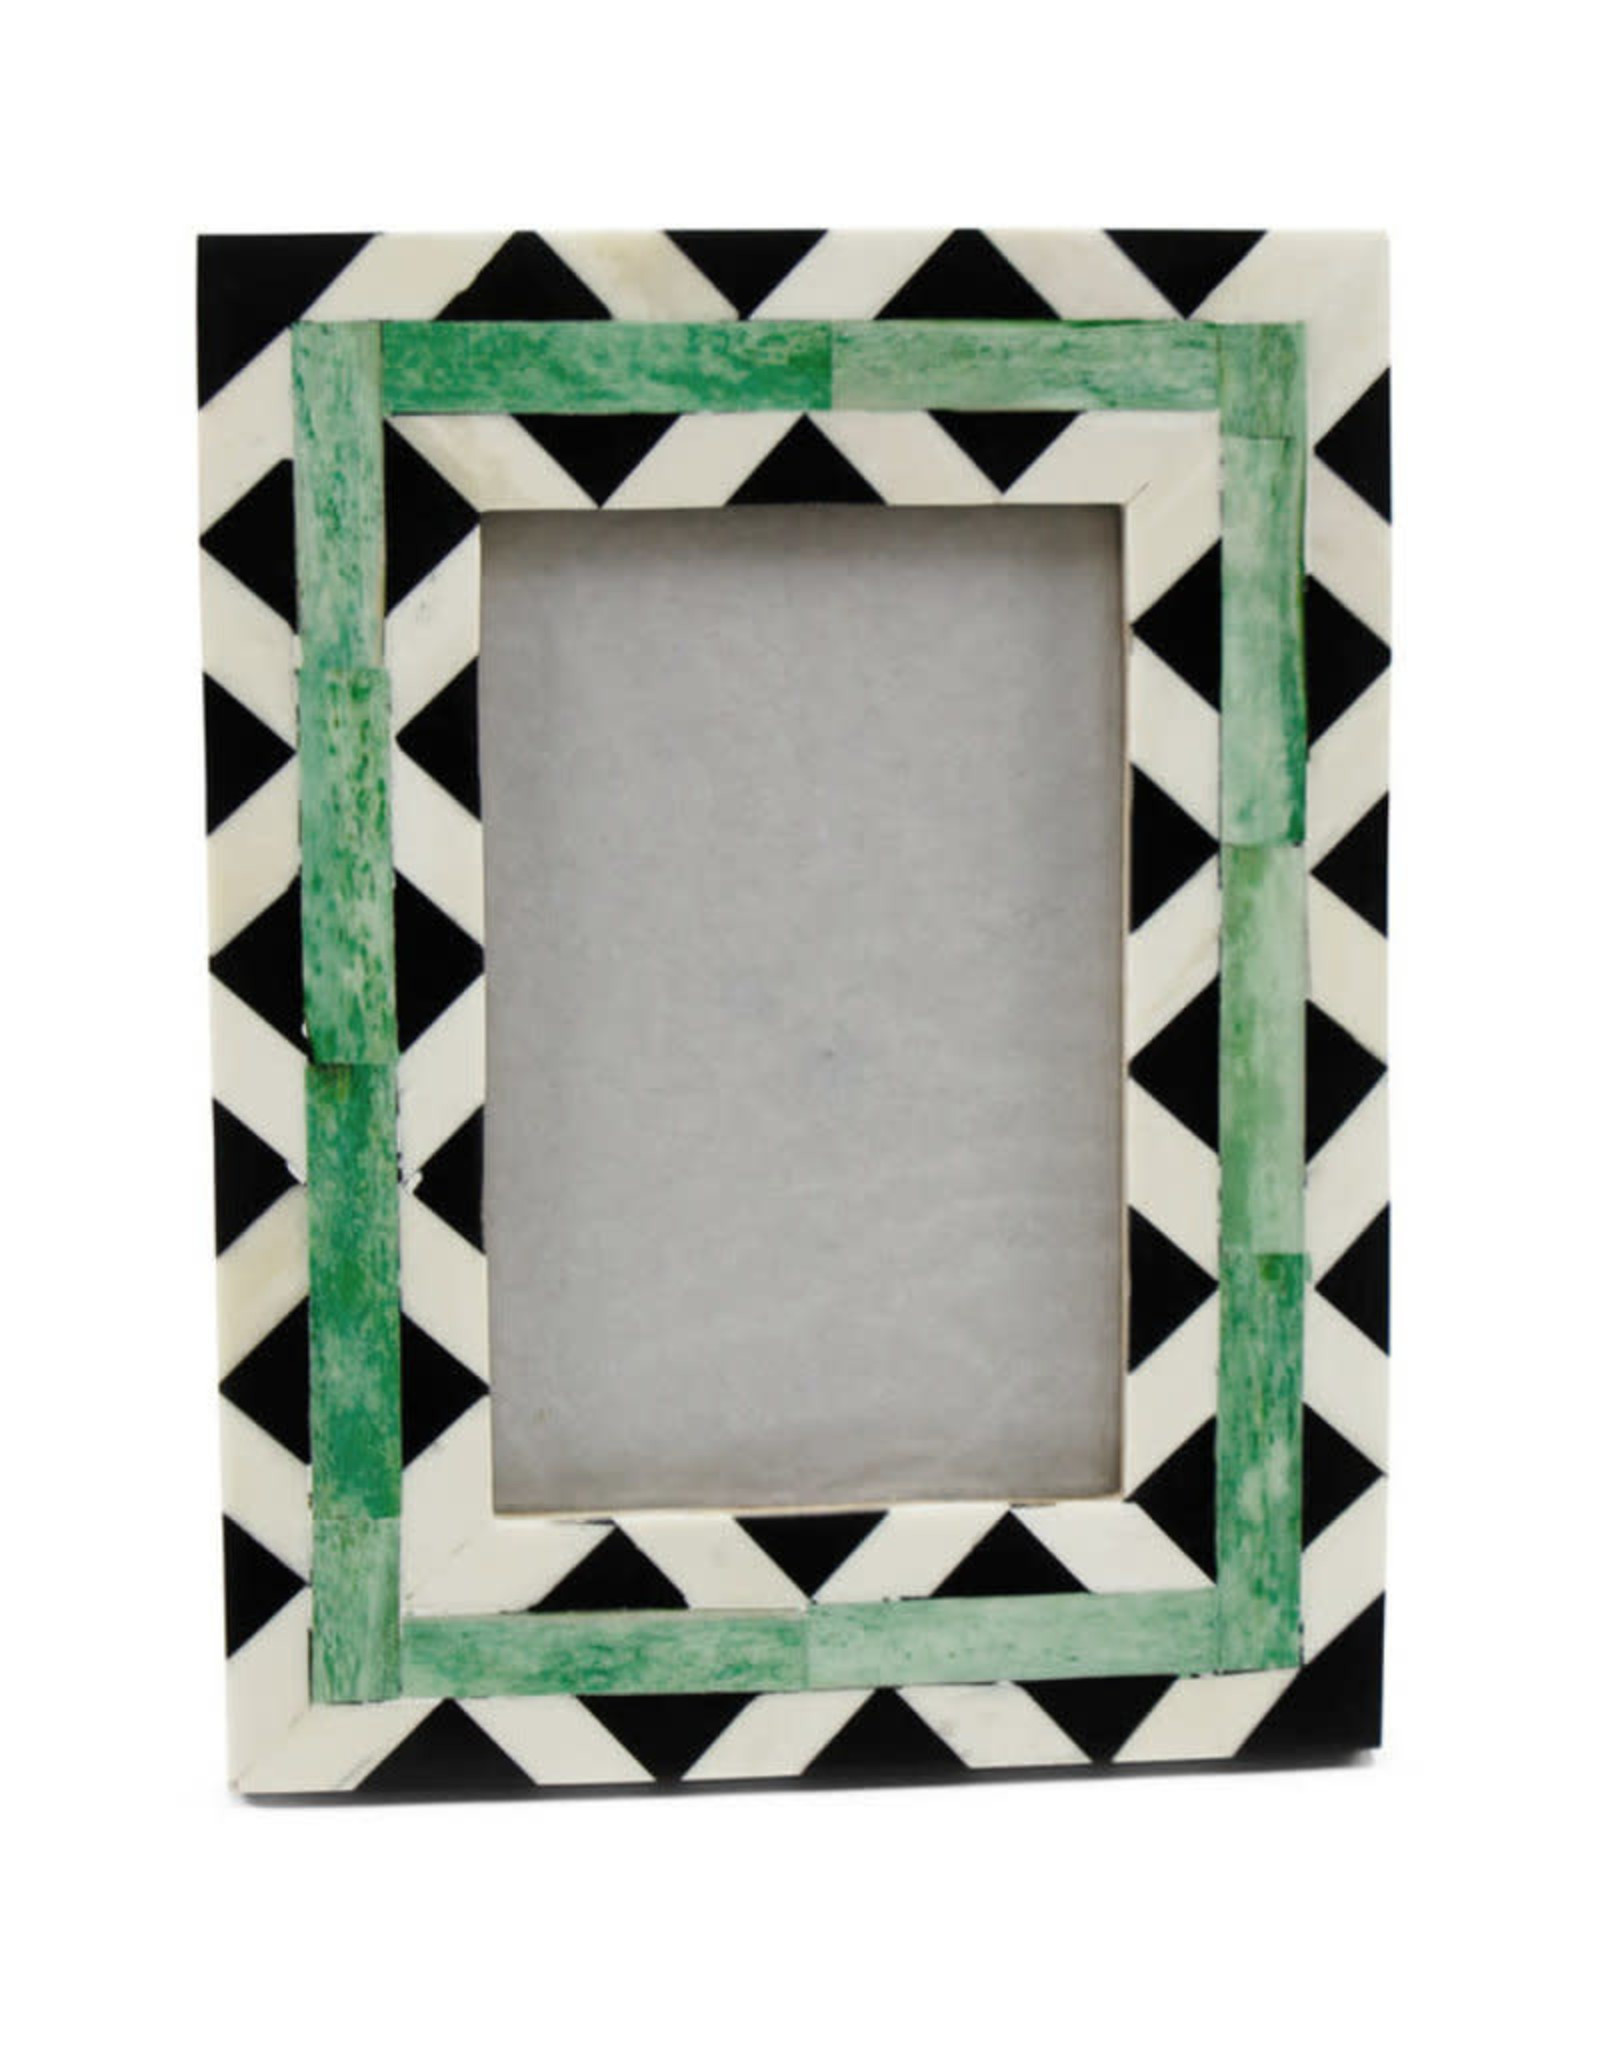 Asha Handicrafts Black Triangle Frame